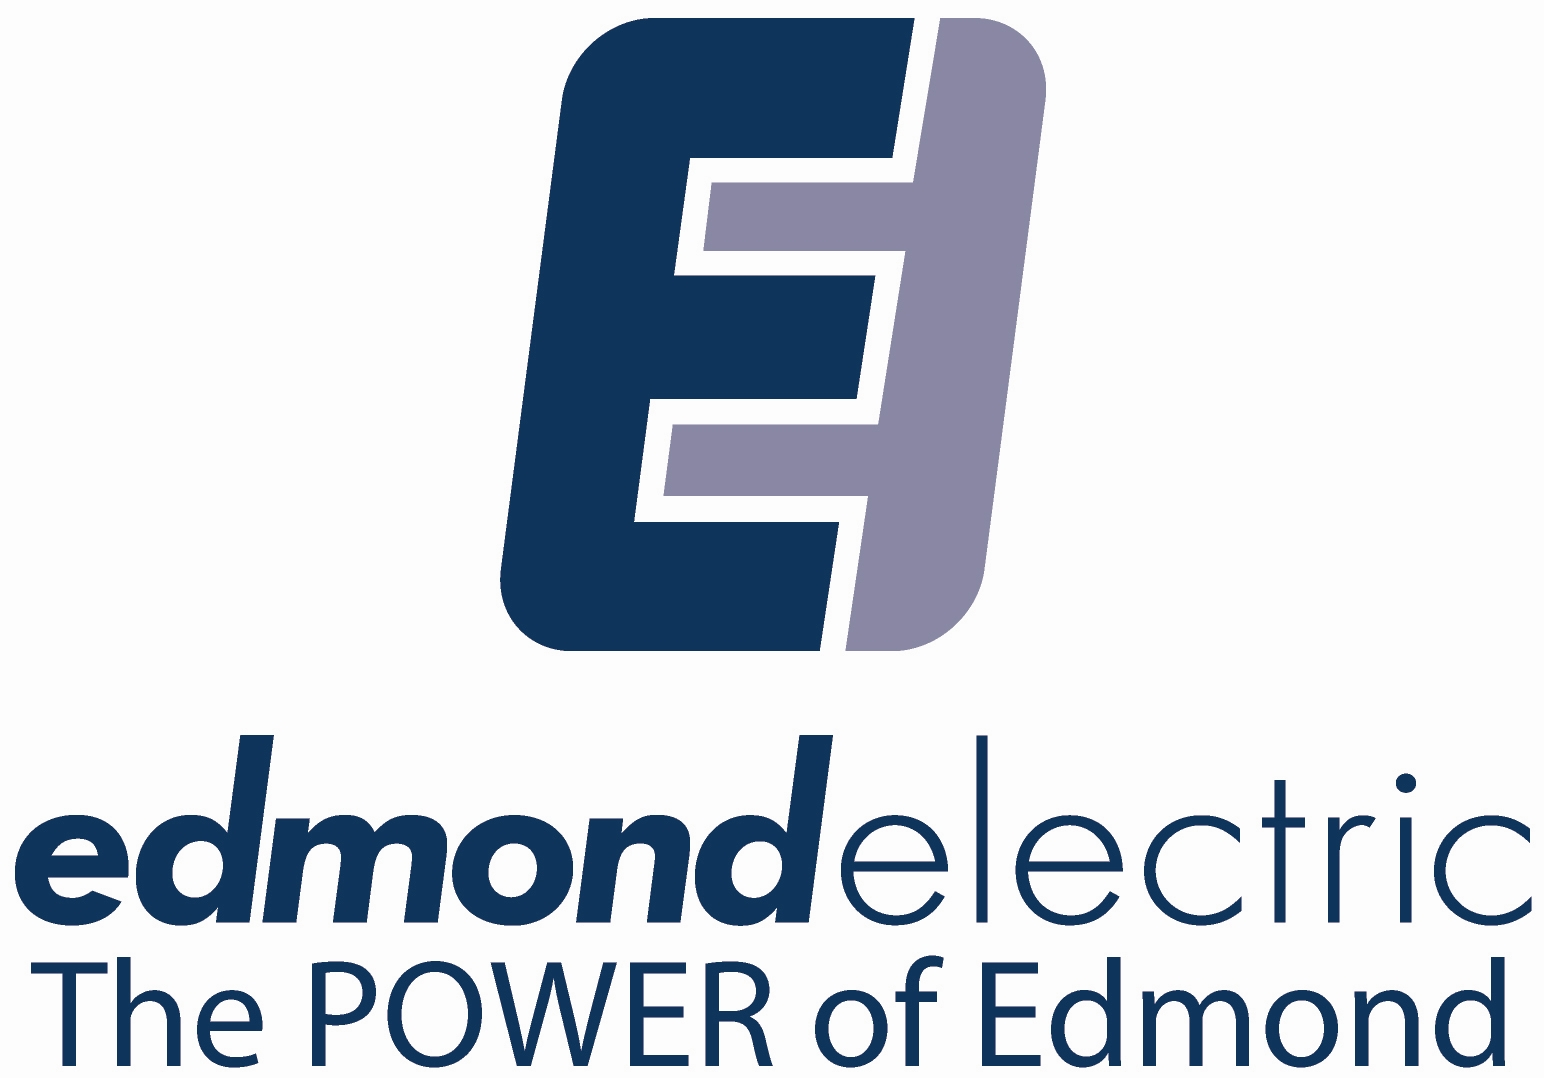 Edmond Ok The City Of Announced Today That For Third Year It Has Been Designated By U S Environmental Protection Agency Epa As A